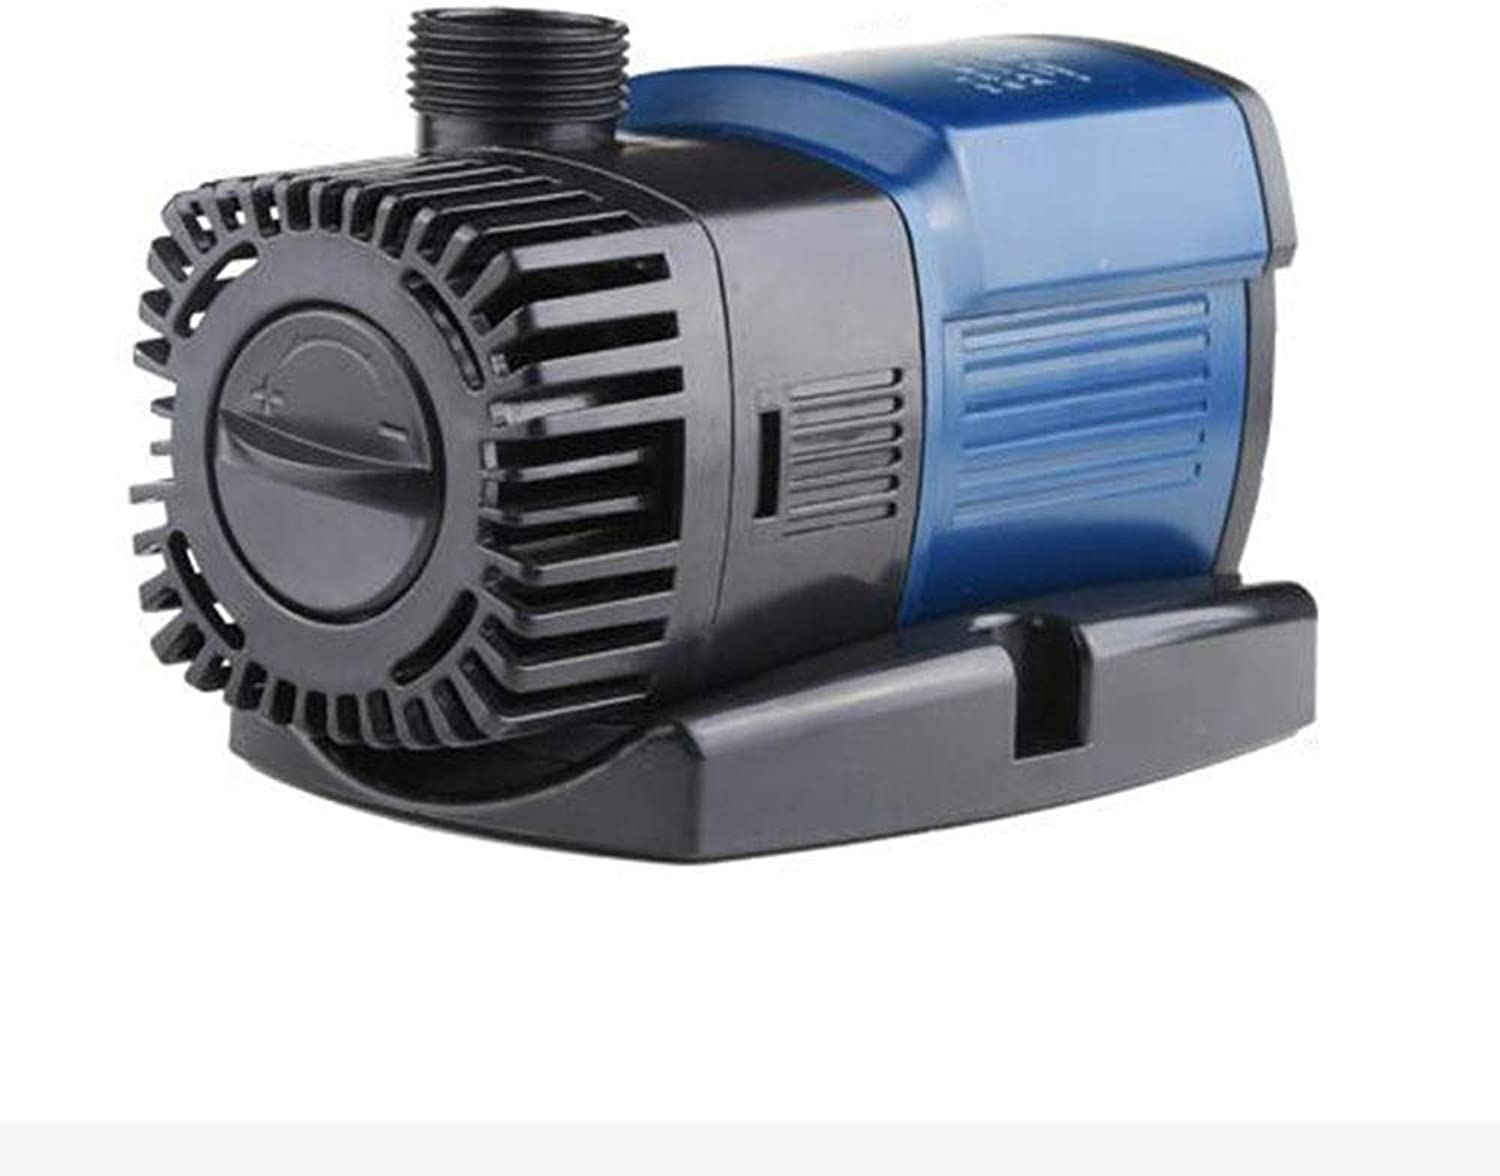 LIFUREN Fish Tank Oxygen Pump Frequency Conversion Pump Submersible Pump Energy Saving Mute Pump Circulating Pump Large Flow (color   bluee, Size   18w)